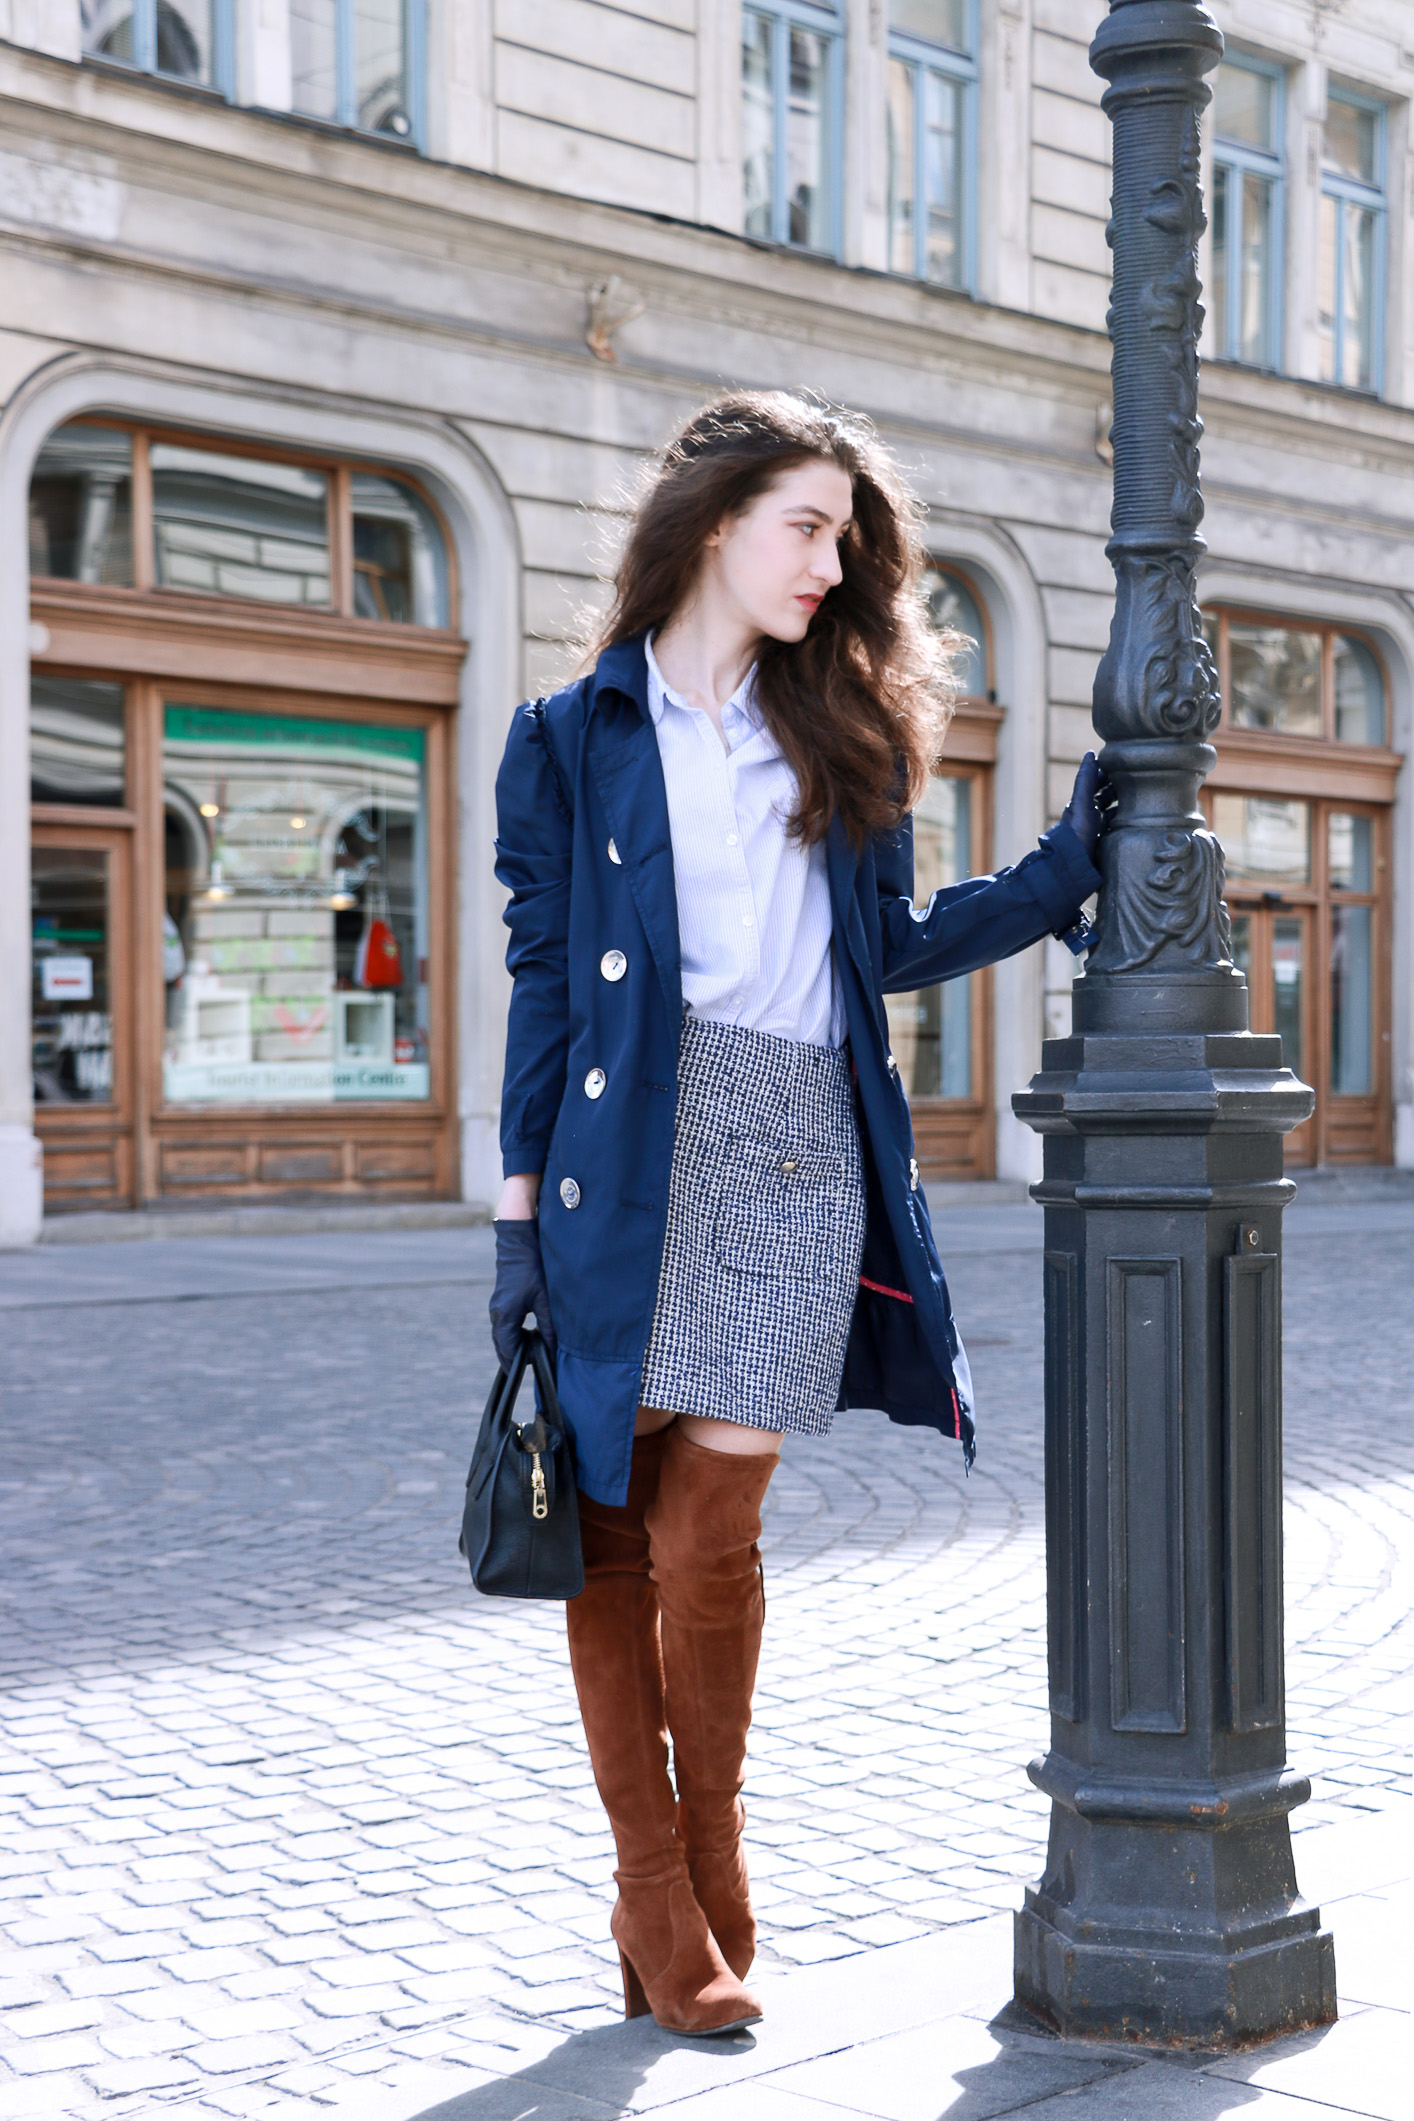 Fashion blogger Veronika Lipar of Brunette From Wall Street sharing how to style over the knee boots in spring